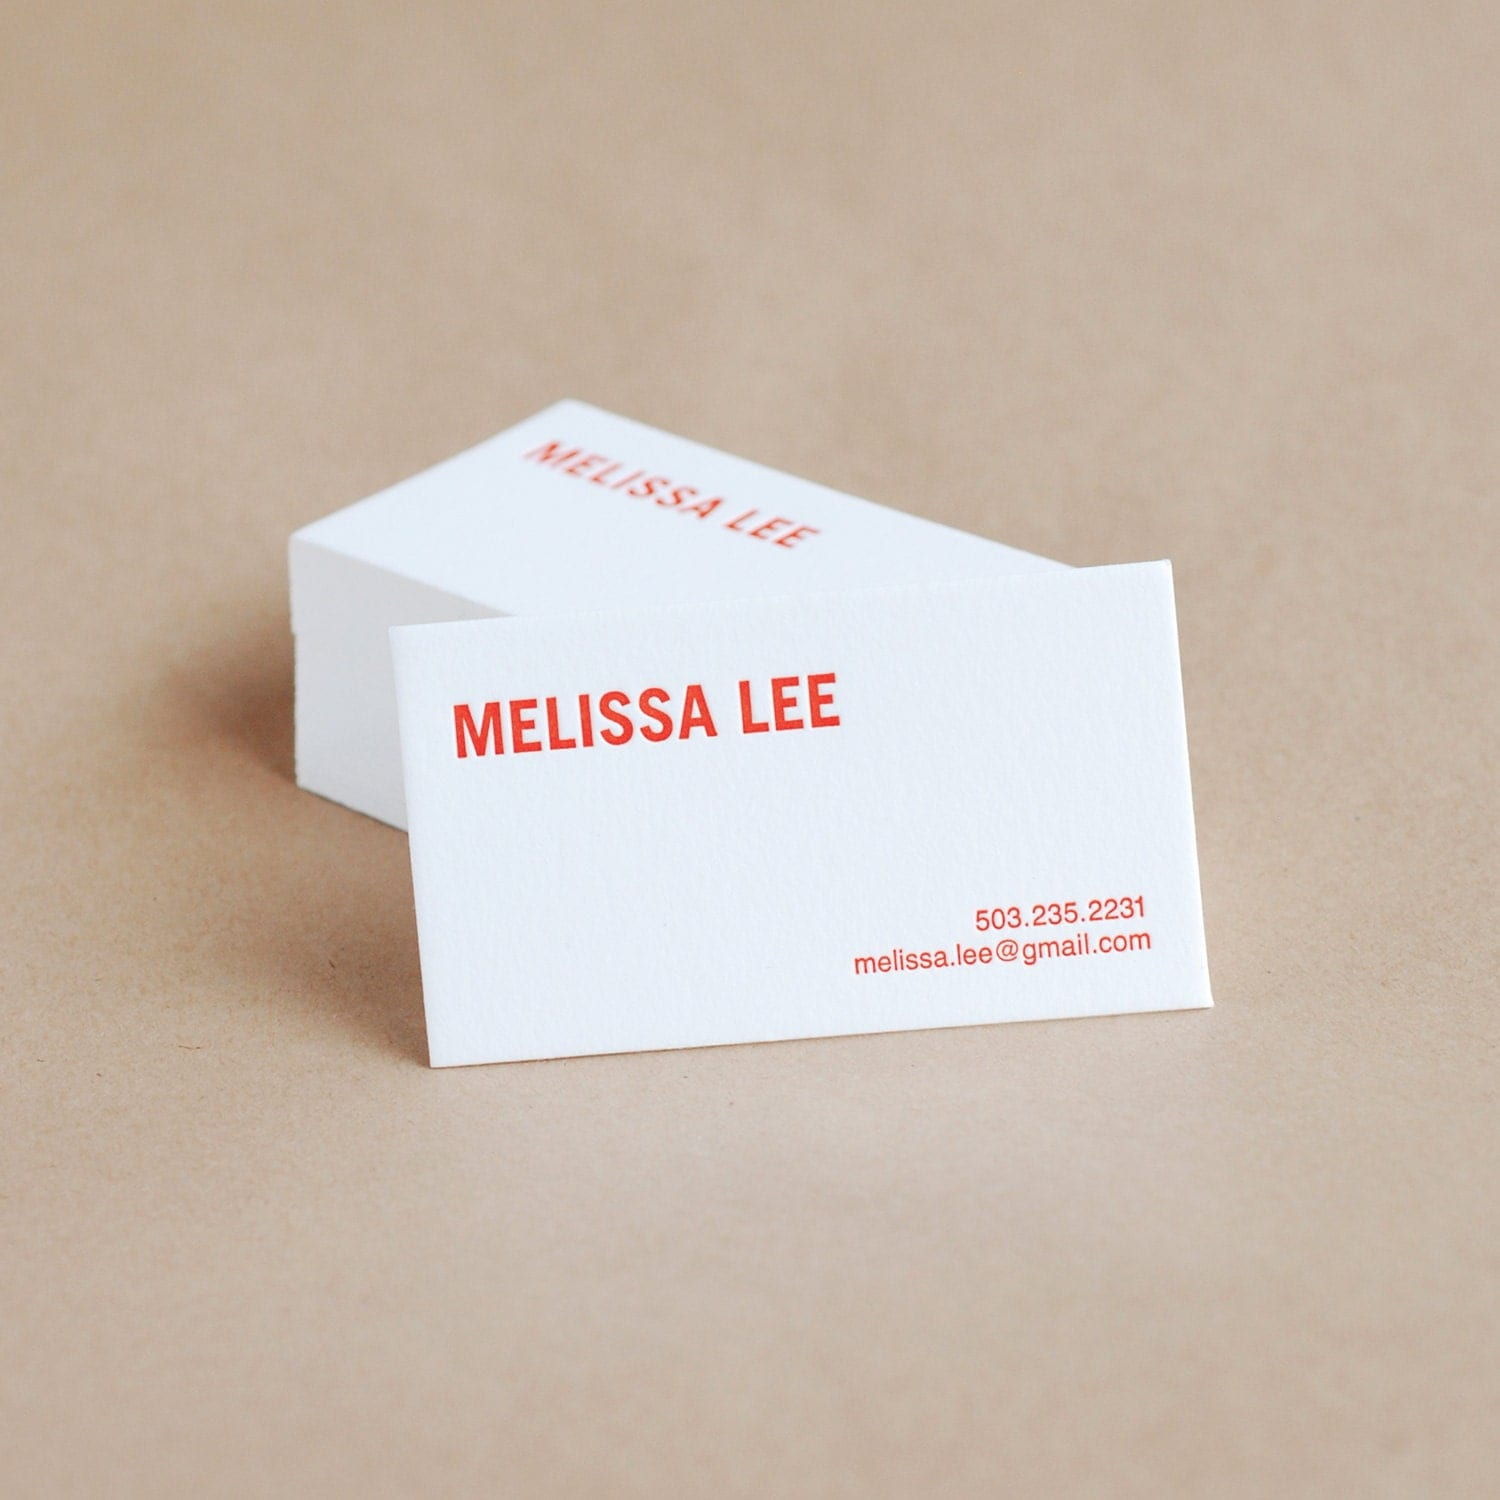 personalized calling cards - Fieldstation.co